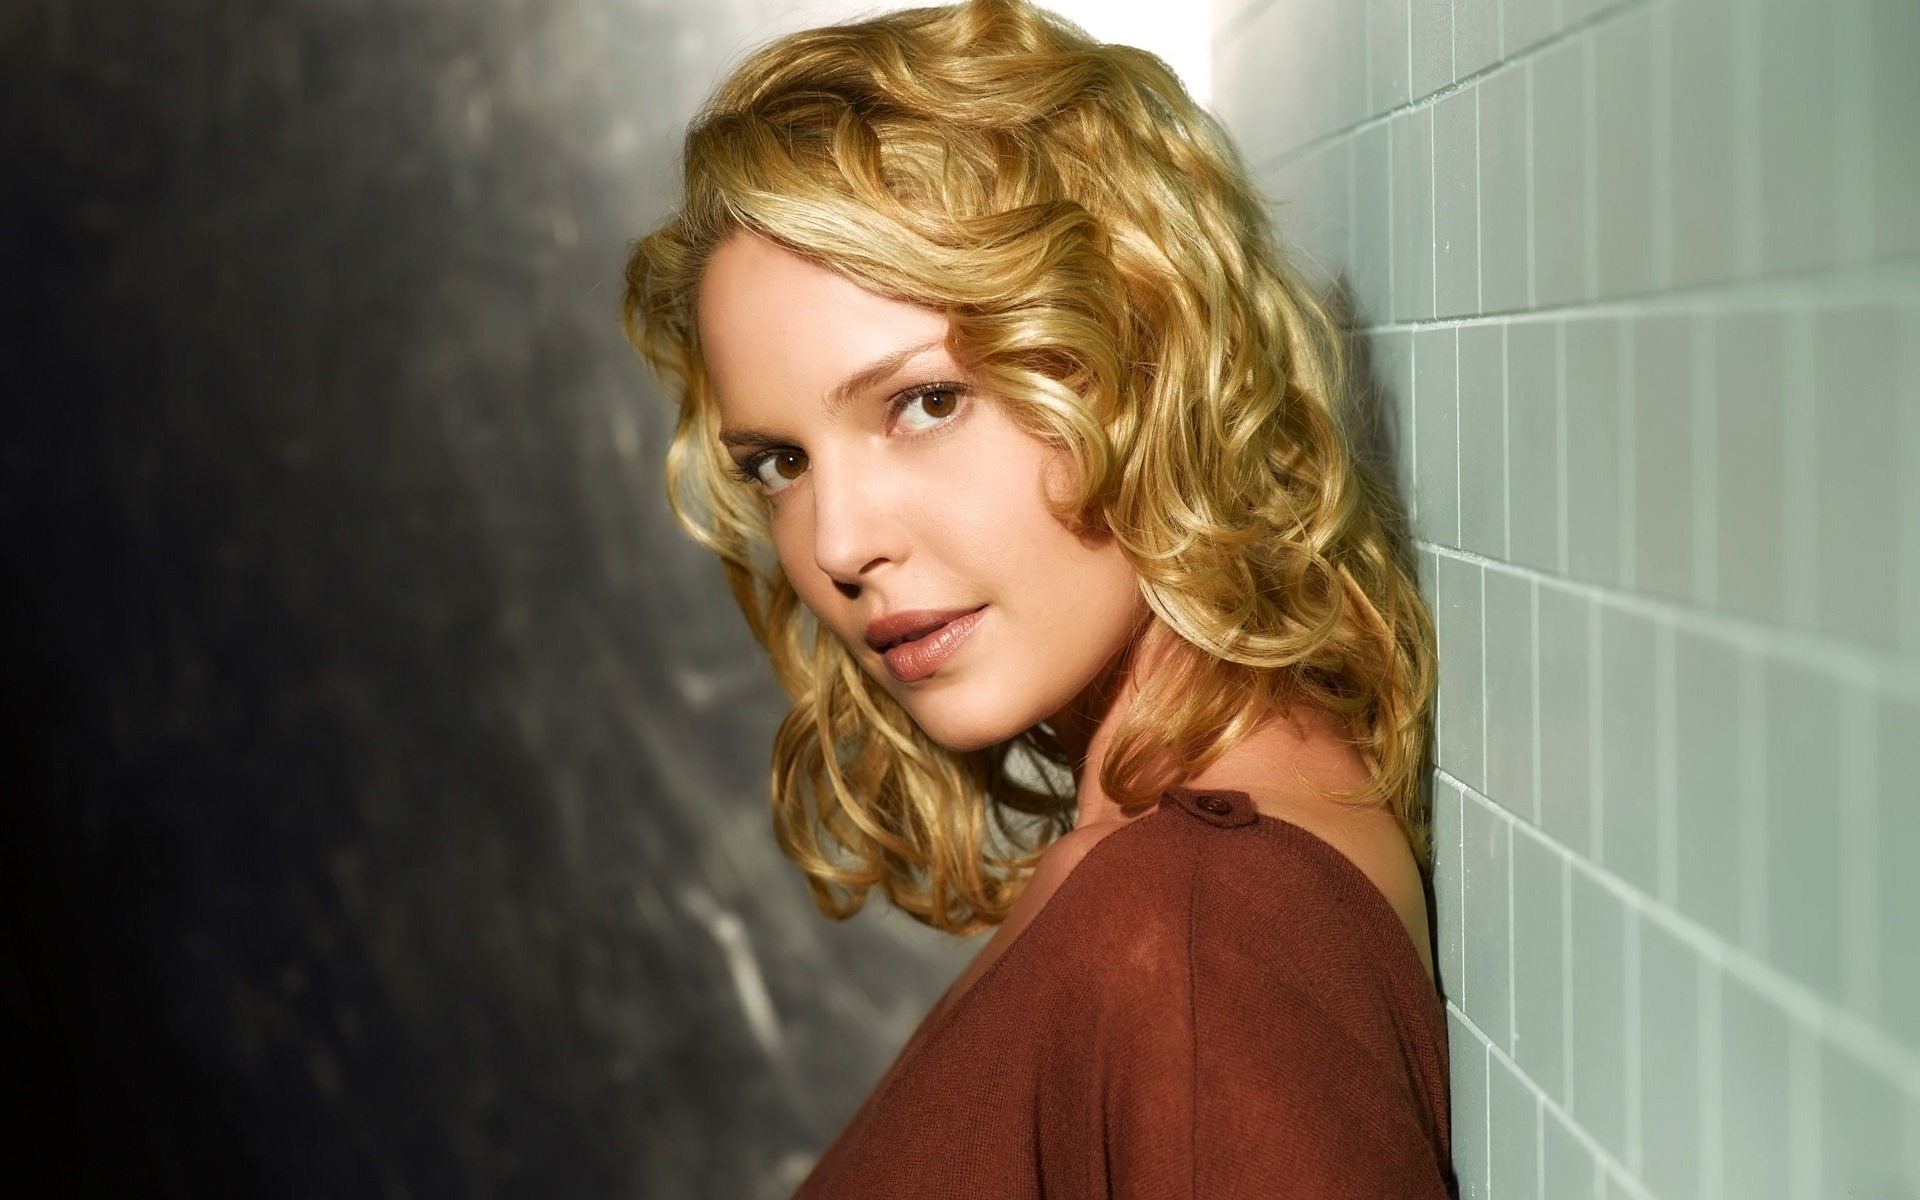 free katherine heigl wallpaper 21604